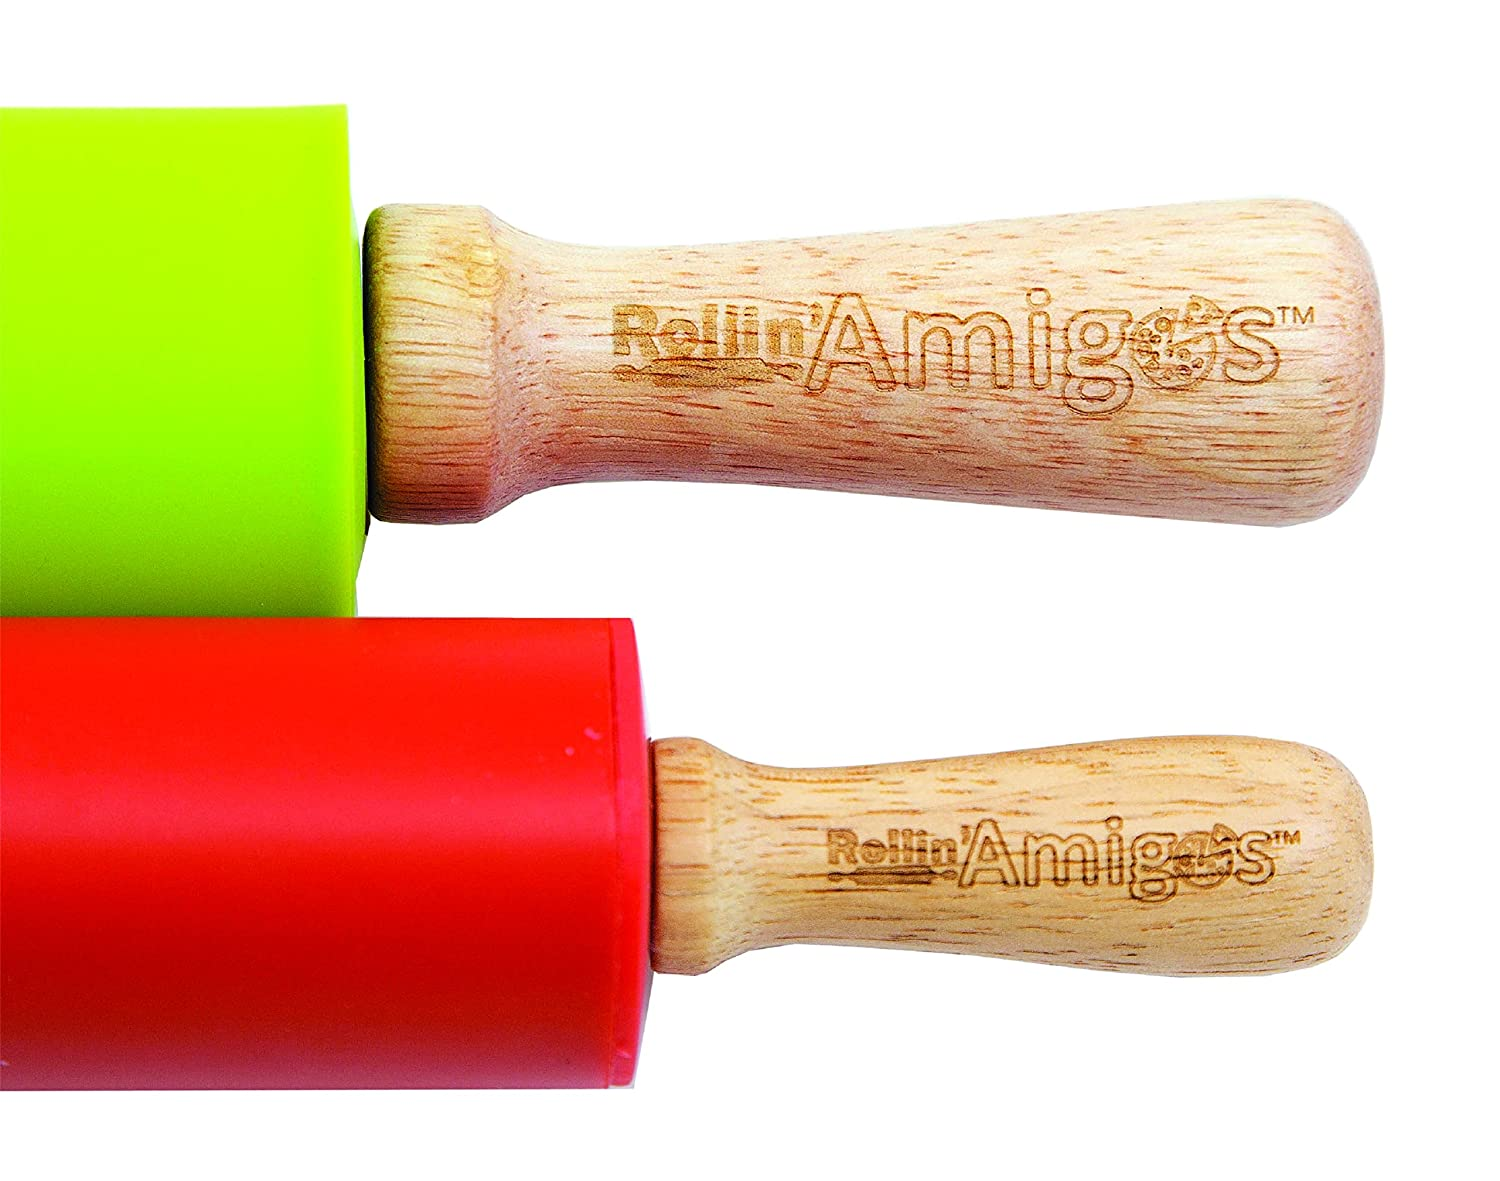 Amazon.com: Rollin Amigos Silicone Baking Mat, Rolling Pin, Cookie Cutters, Empanada Maker, Ravioli Mold, Baking Mat, Dumpling Maker, Pierogi Maker, ...